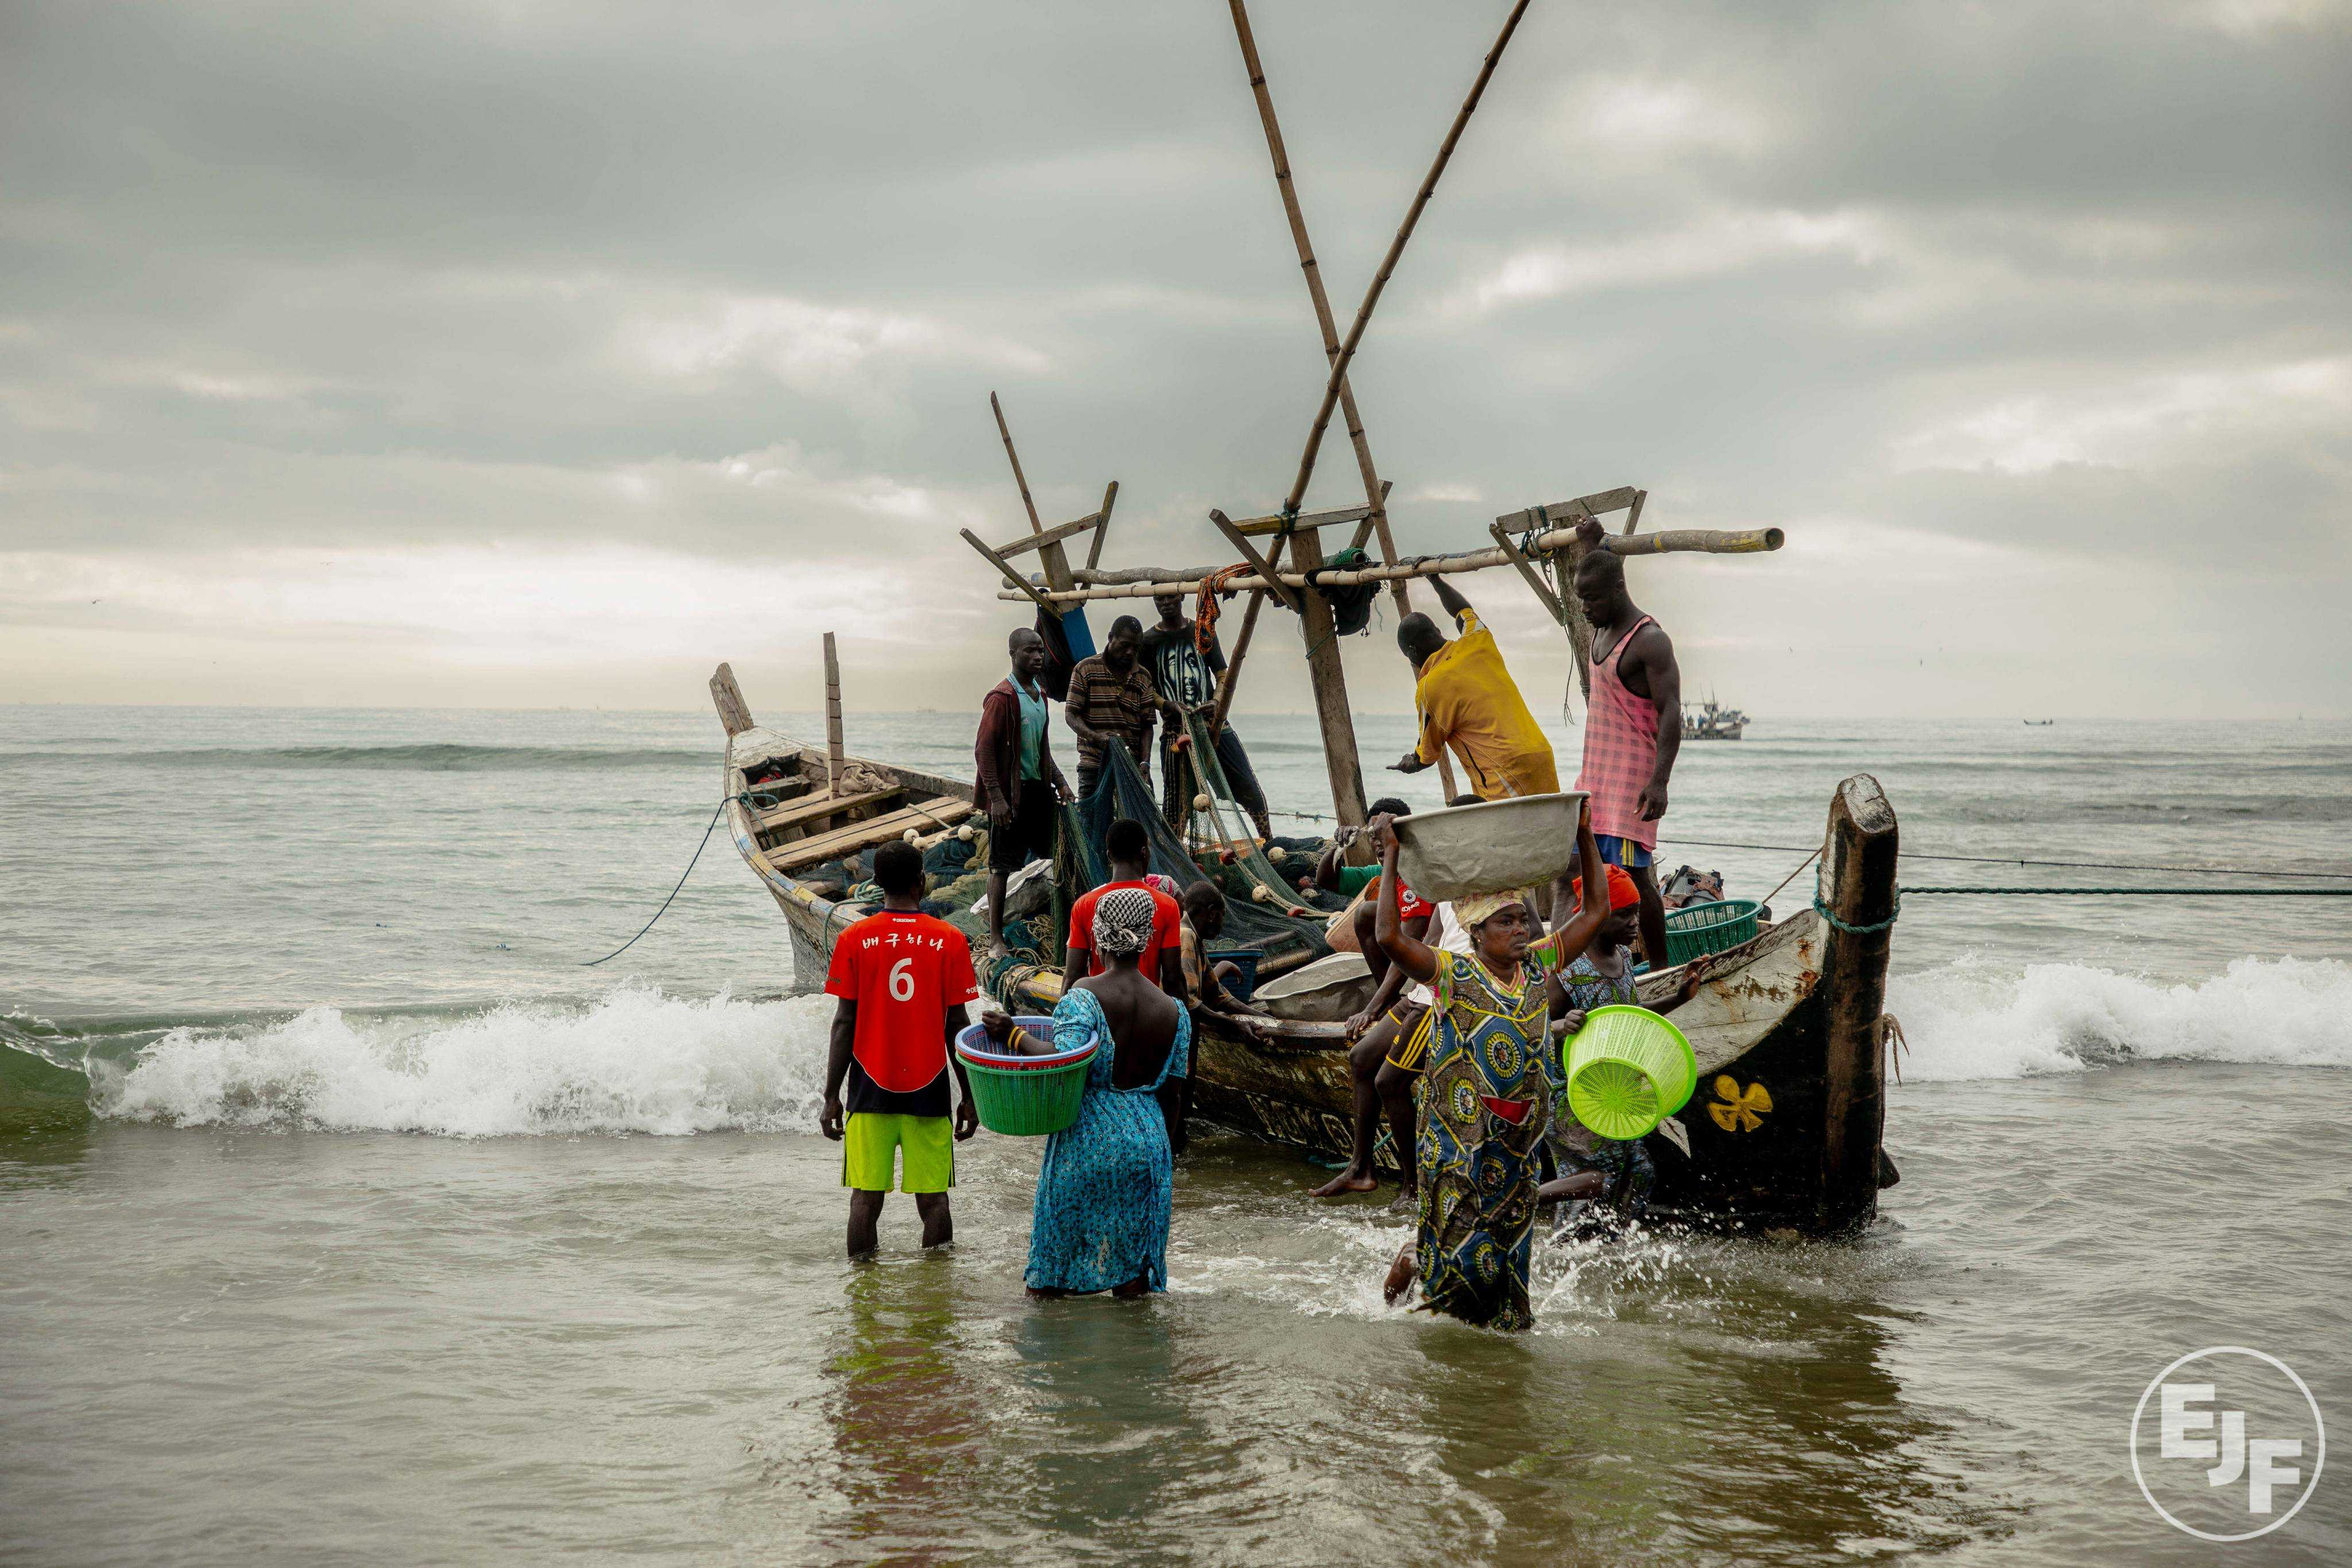 Ghana given second 'yellow card' warning from EU over illegal fishing